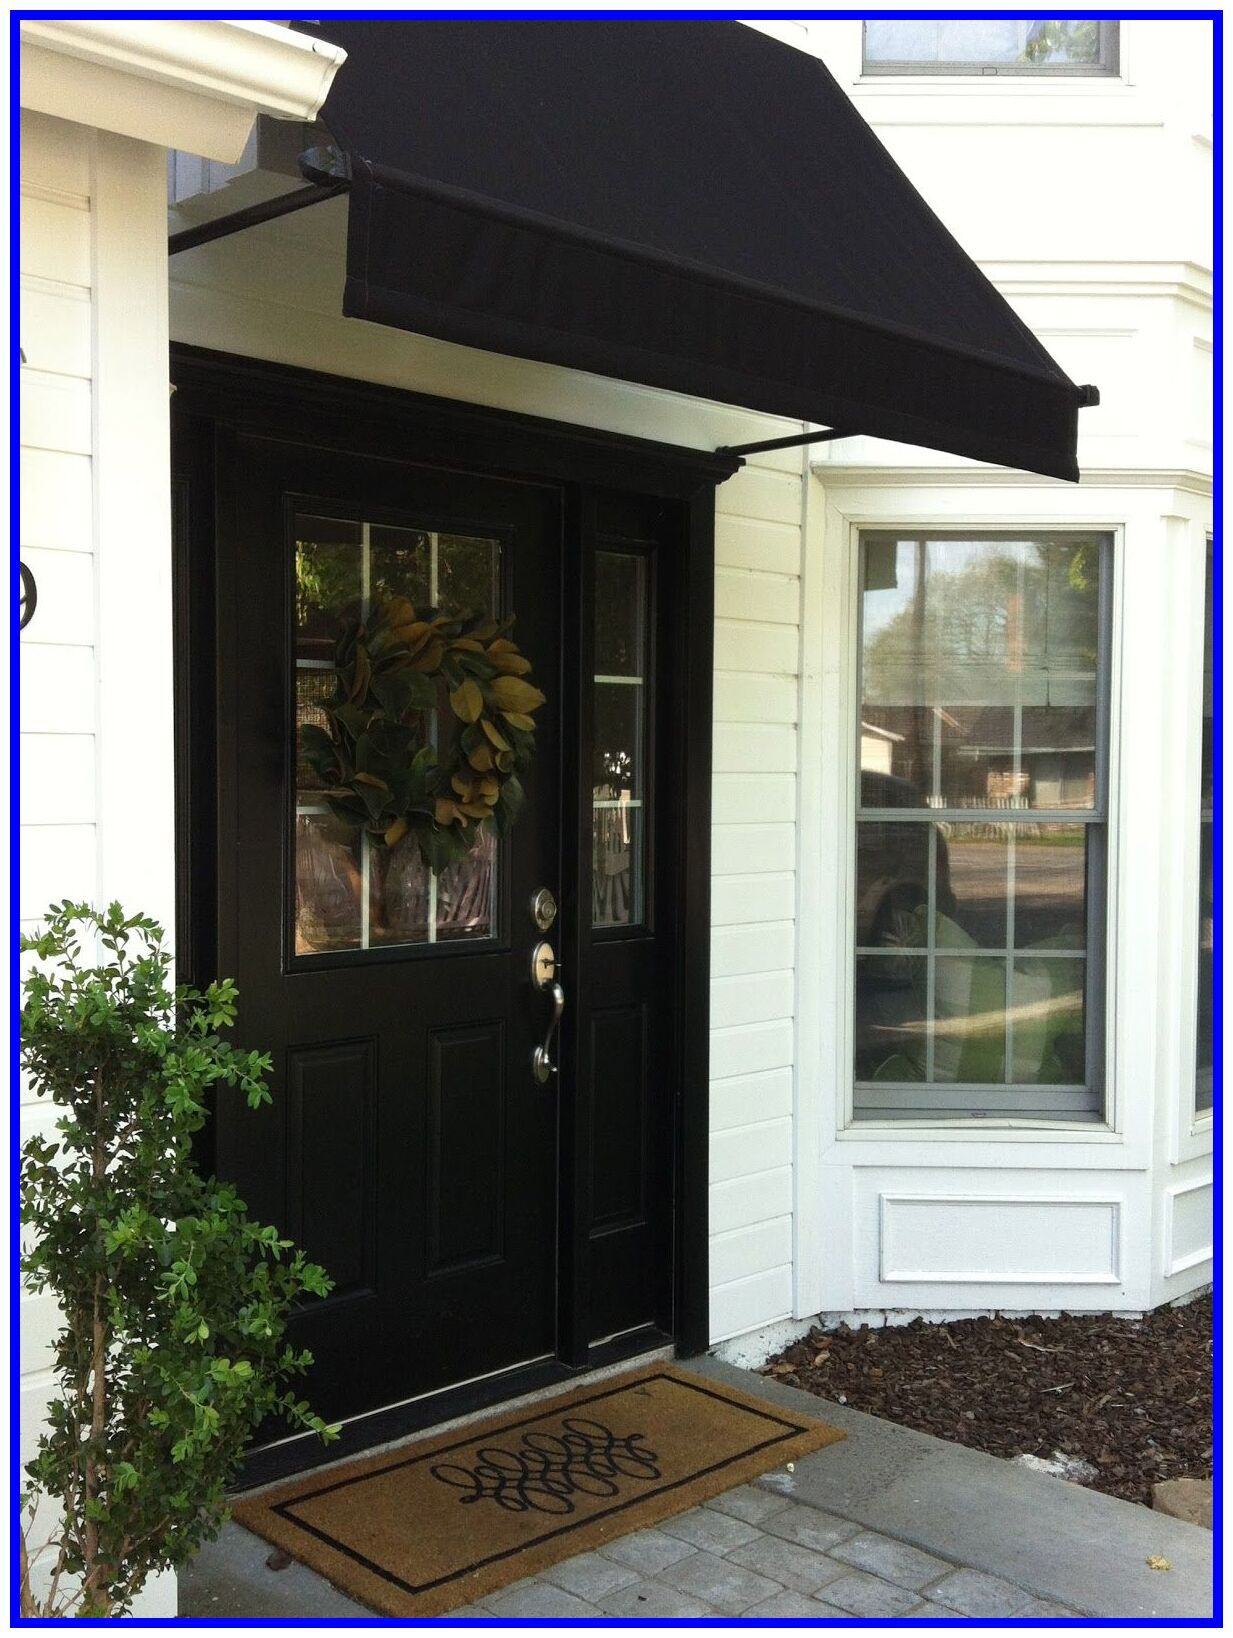 58 Reference Of Front Door Awning Modern In 2020 Awning Over Door Front Door Awning Modern Front Door